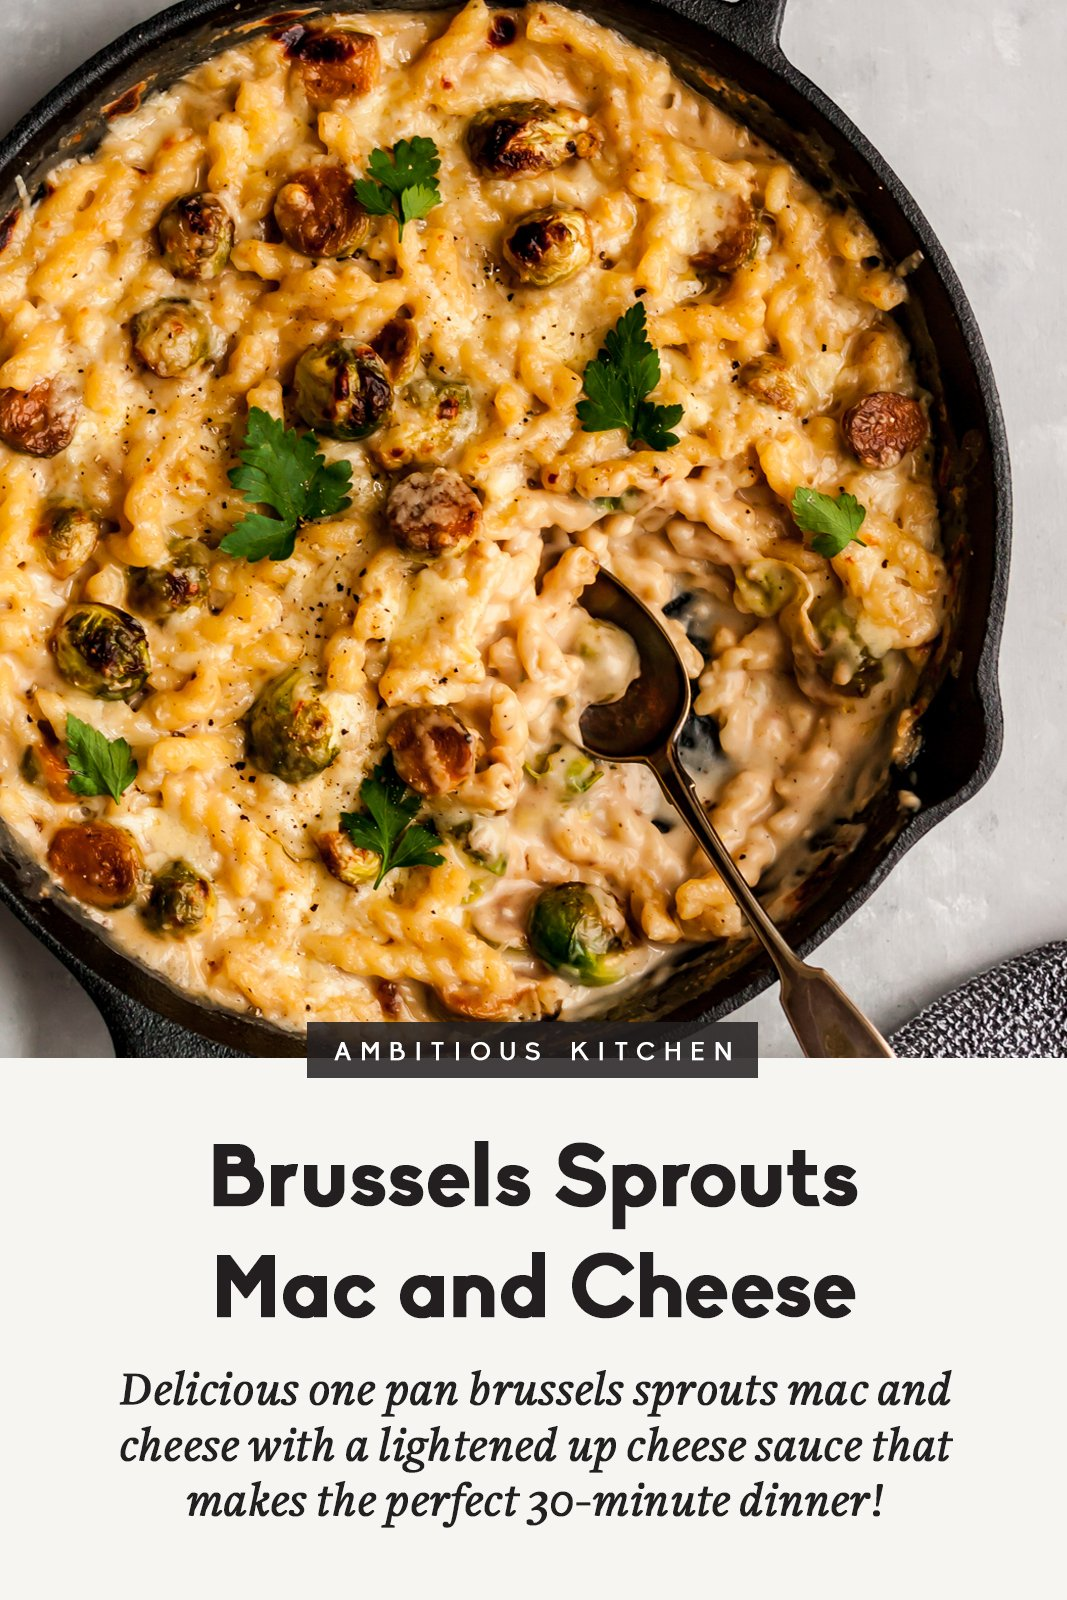 Brussels sprouts mac and cheese with text overlay